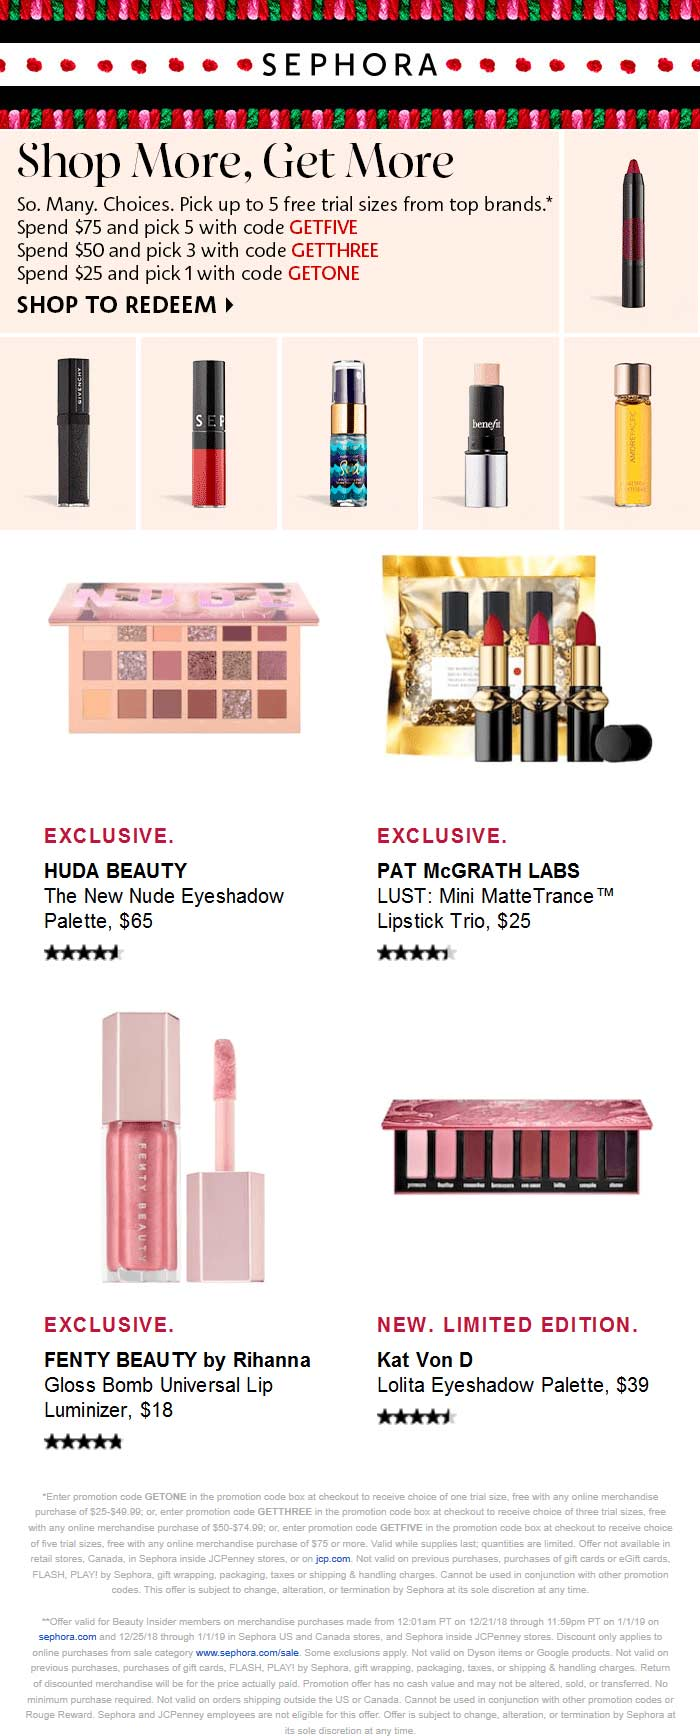 Sephora Coupon May 2019 20% off sale items at Sephora, ditto online